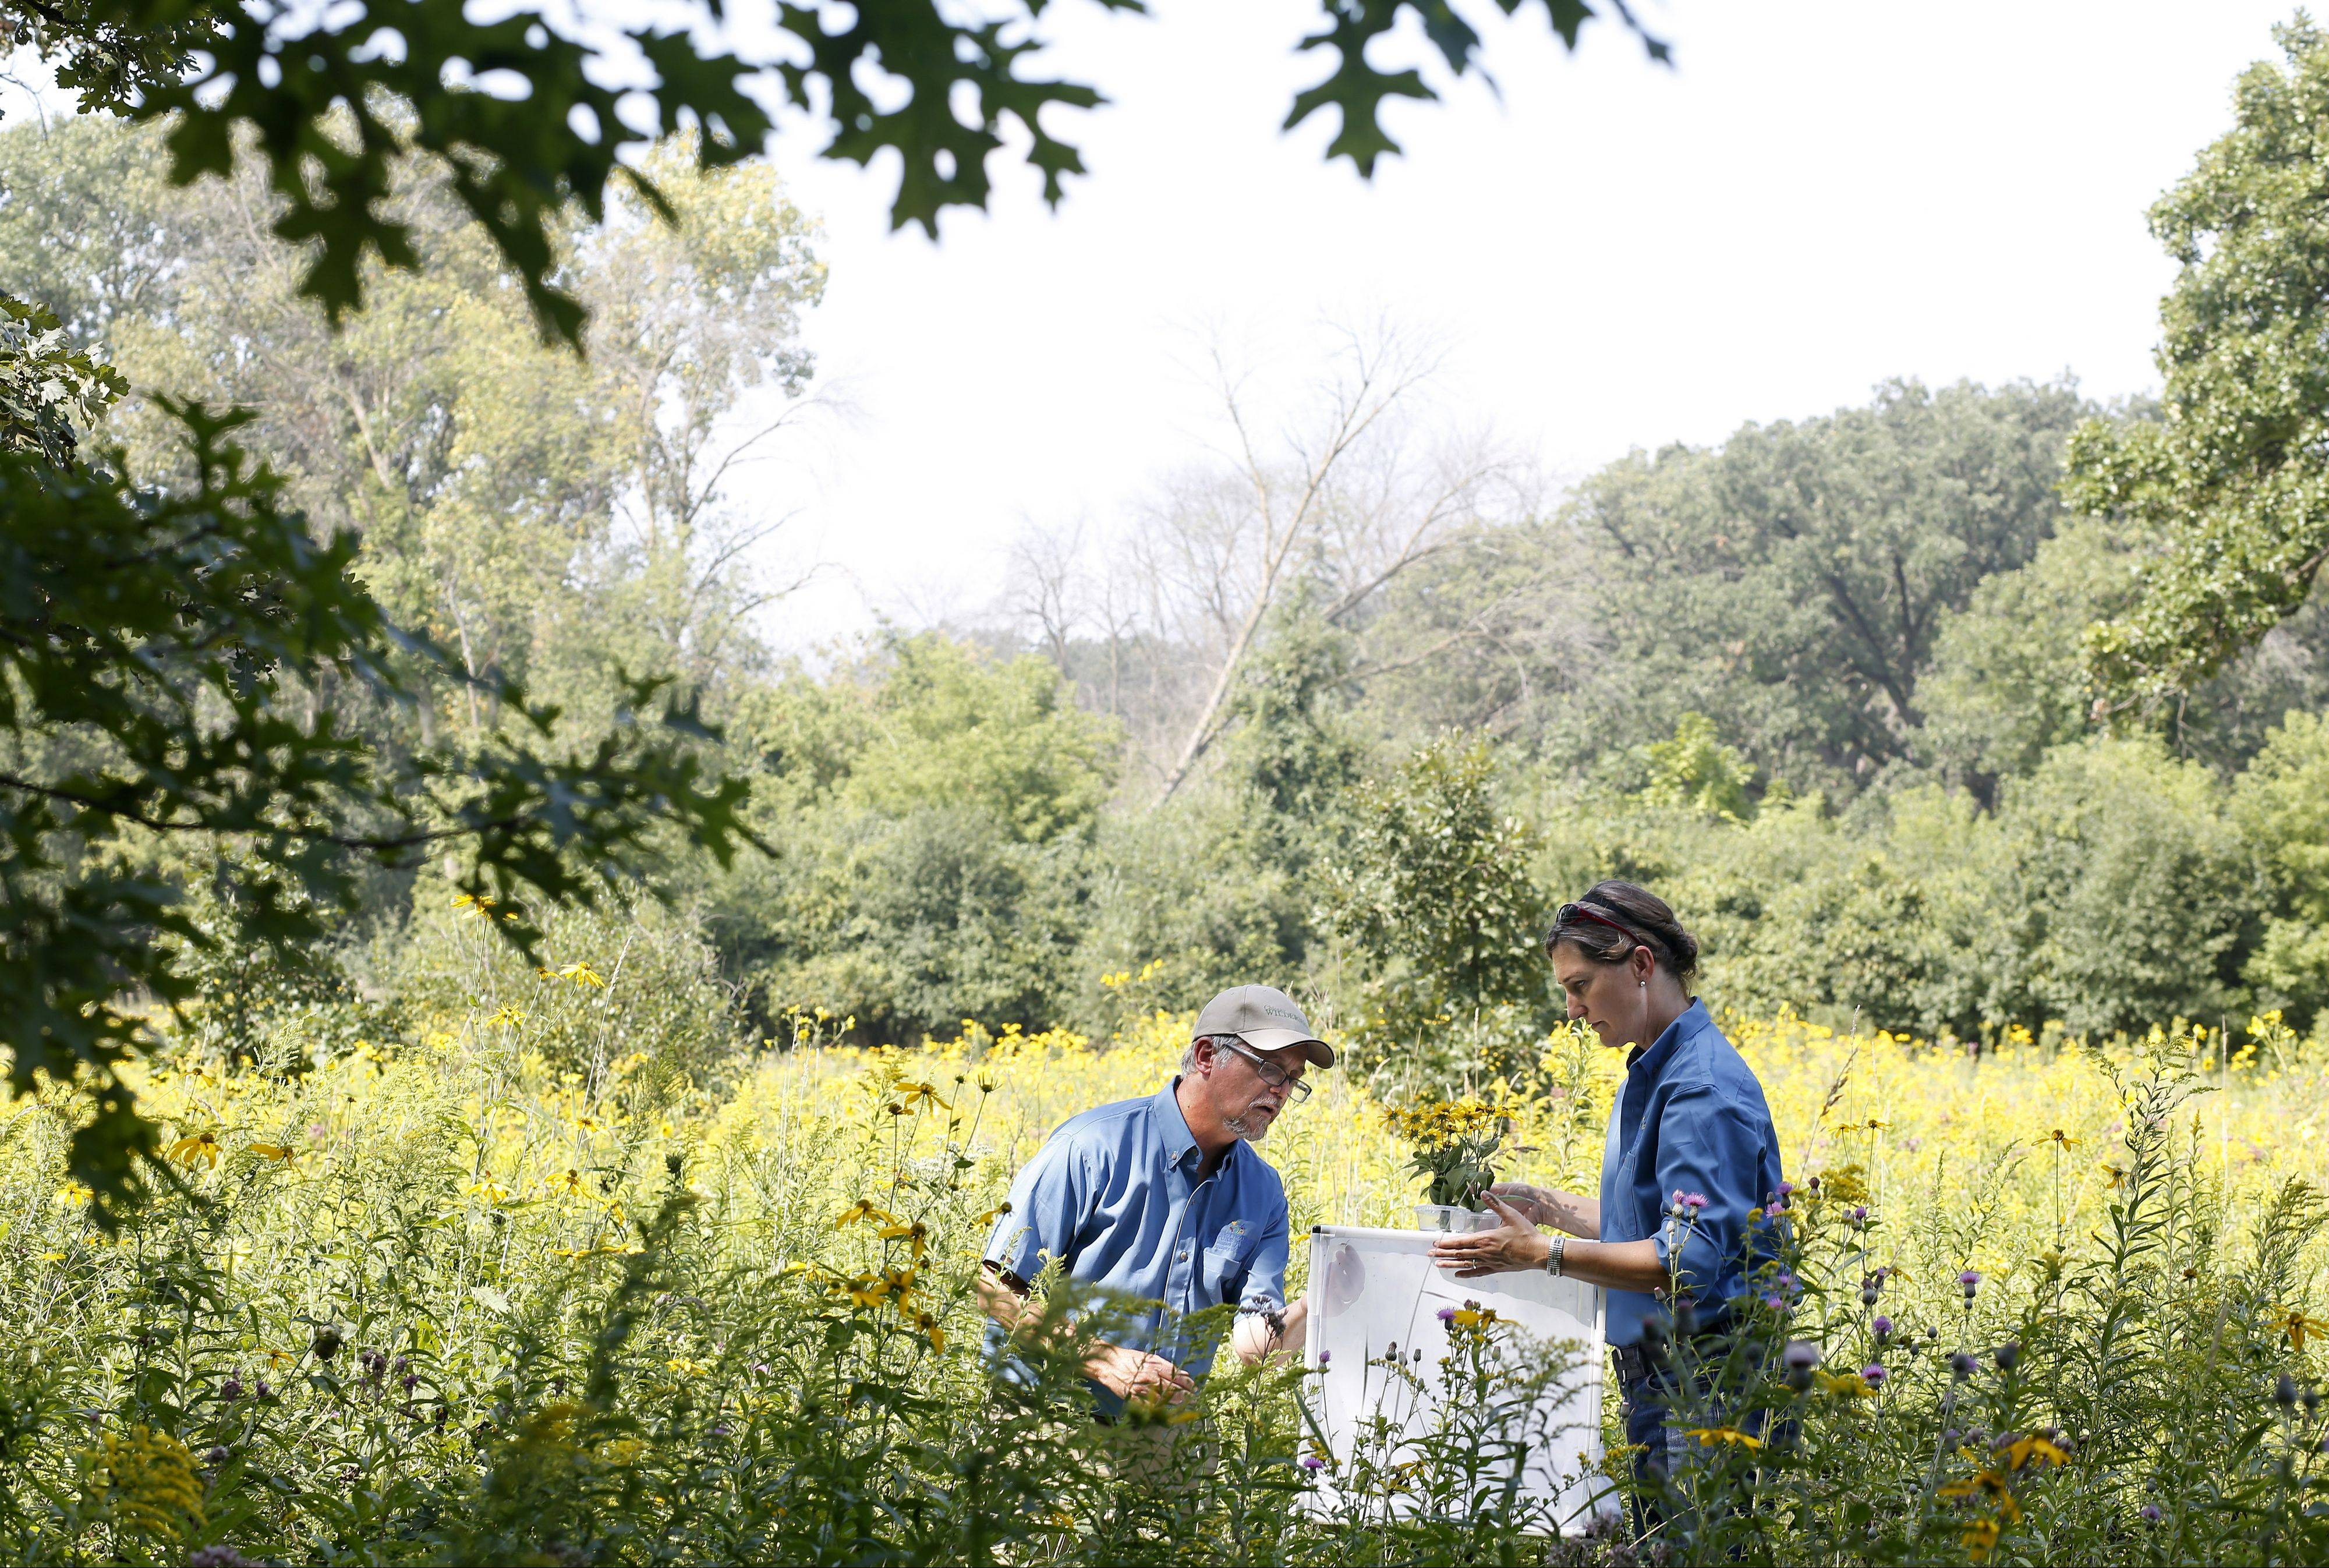 Doug Taron, curator of biology, and Karen Kramer Wilson, living invertebrate specialist, both of the Peggy Notebaert Nature Museum, release their special insects Thursday into the Bluff City Fen in Elgin. The swamp metalmark butterflies were bred at the nature museum in Chicago.